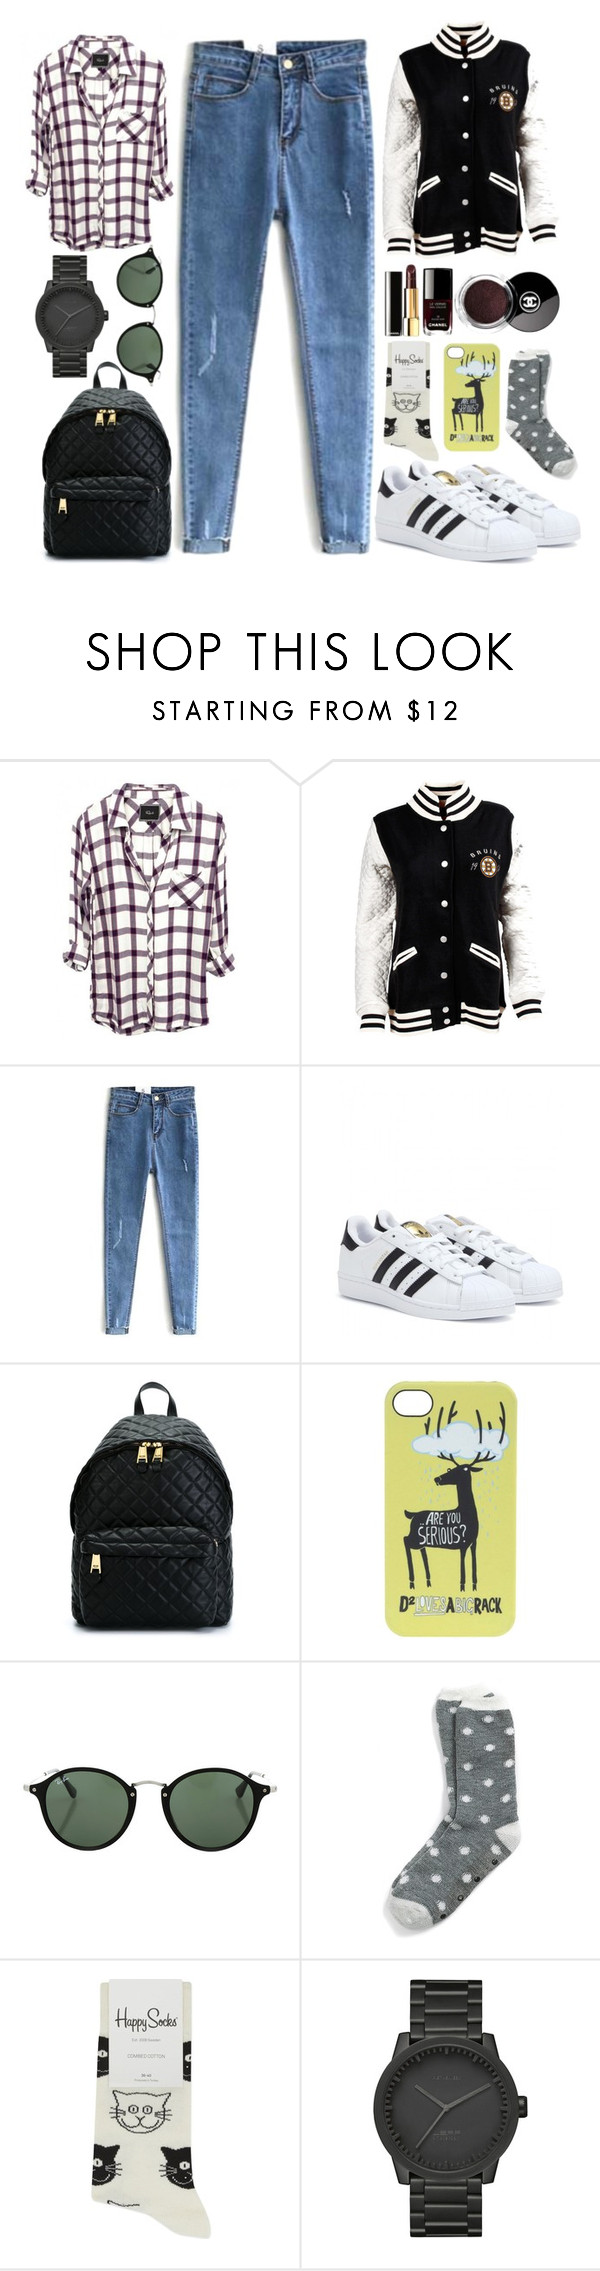 """i wish i can make it easy"" by designedbyalex ❤ liked on Polyvore featuring adidas, Moschino, Dsquared2, Ray-Ban, Tommy Hilfiger, Happy Socks, LEFF Amsterdam and Chanel"